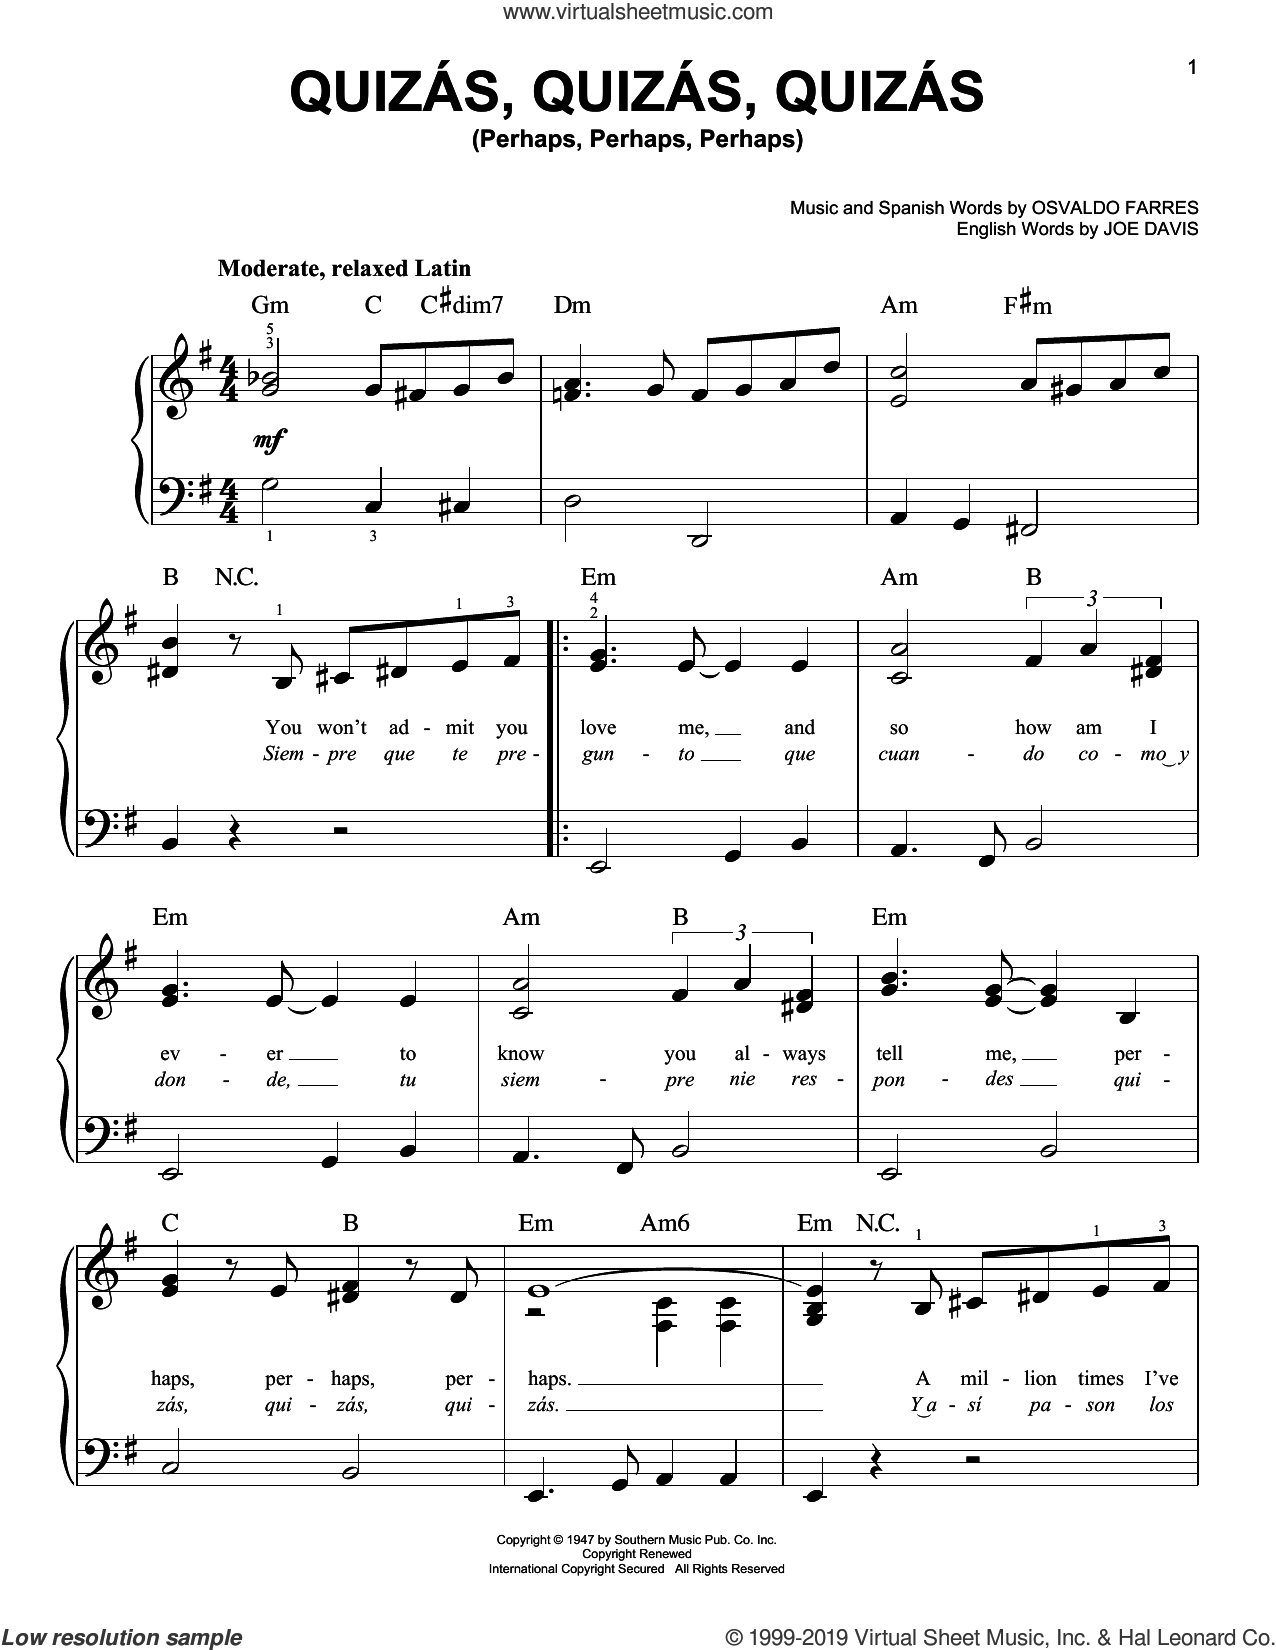 Quizas, Quizas, Quizas (Perhaps, Perhaps, Perhaps) sheet music for piano solo by Joe Davis and Osvaldo Farres, beginner skill level